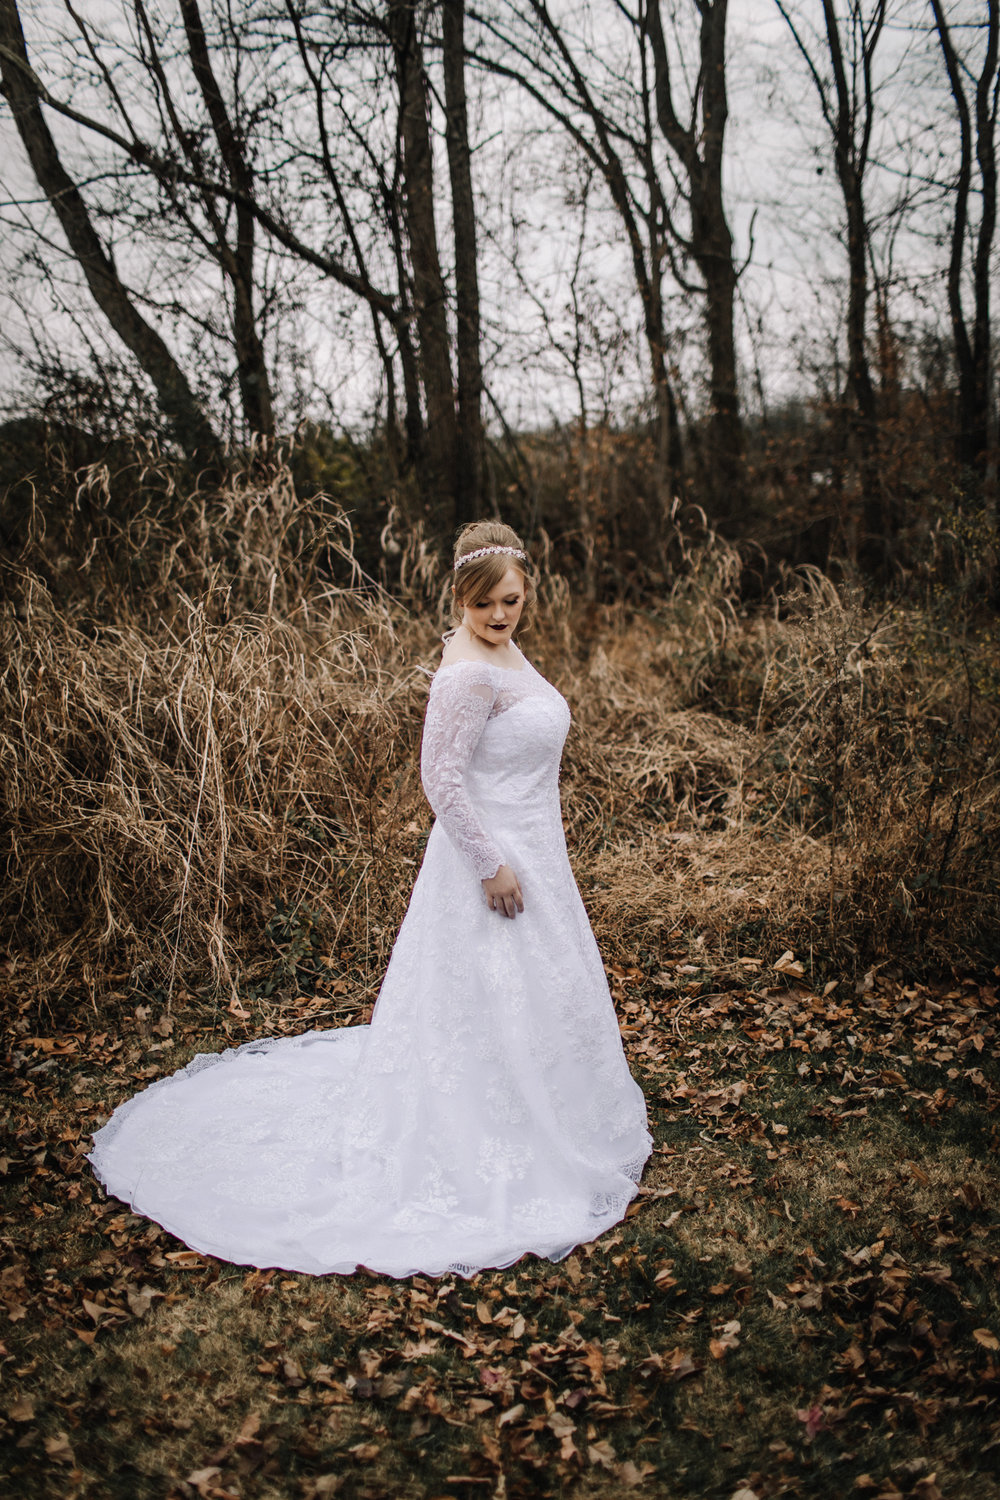 billie-shaye-style-photography-www.billieshayestyle.com-winter-wedding-the-belle-hollow-clarksville-tennessee-8987.jpg